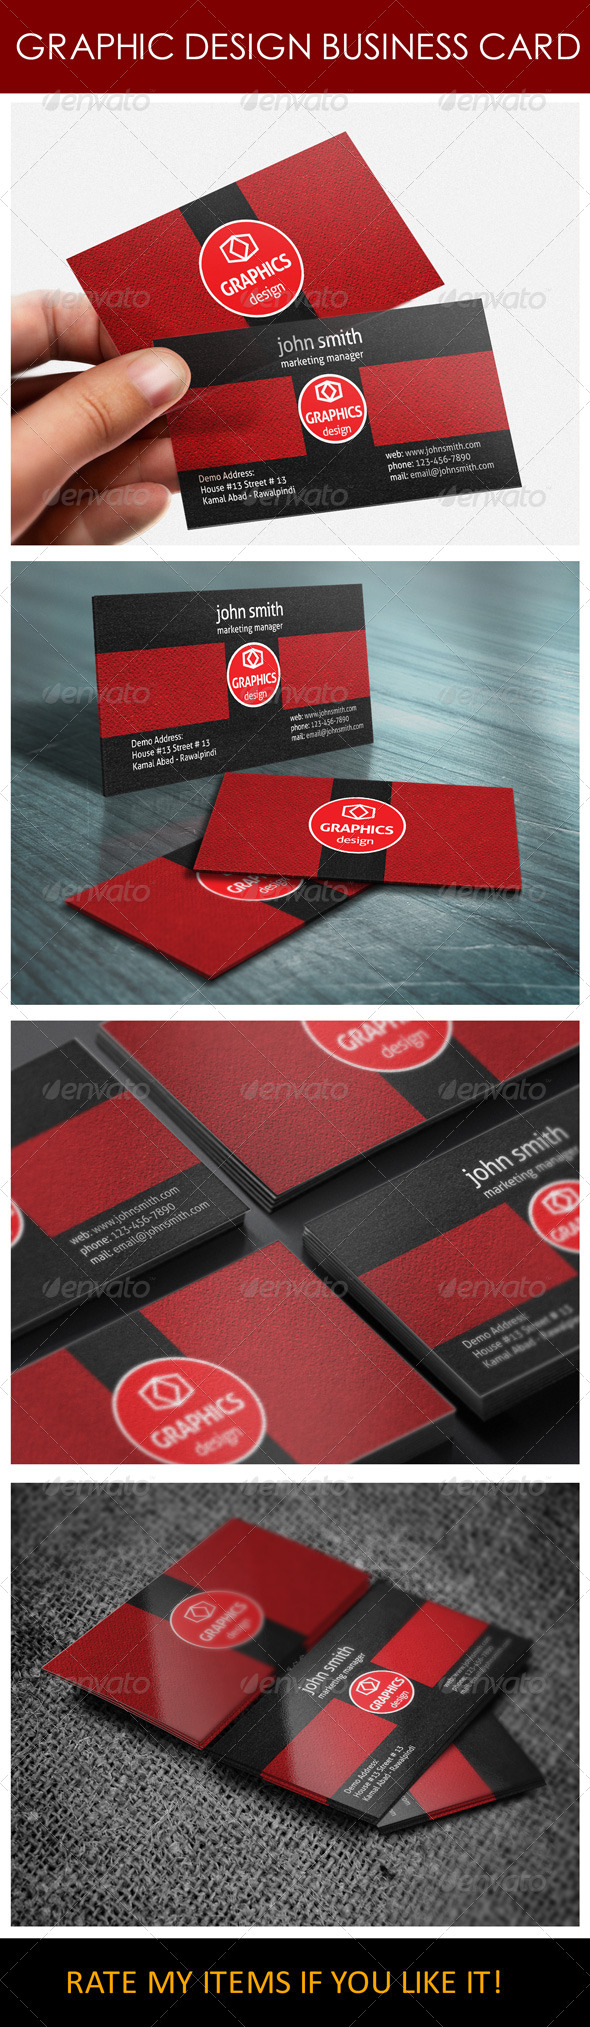 Graphic Design Business Card - Corporate Business Cards